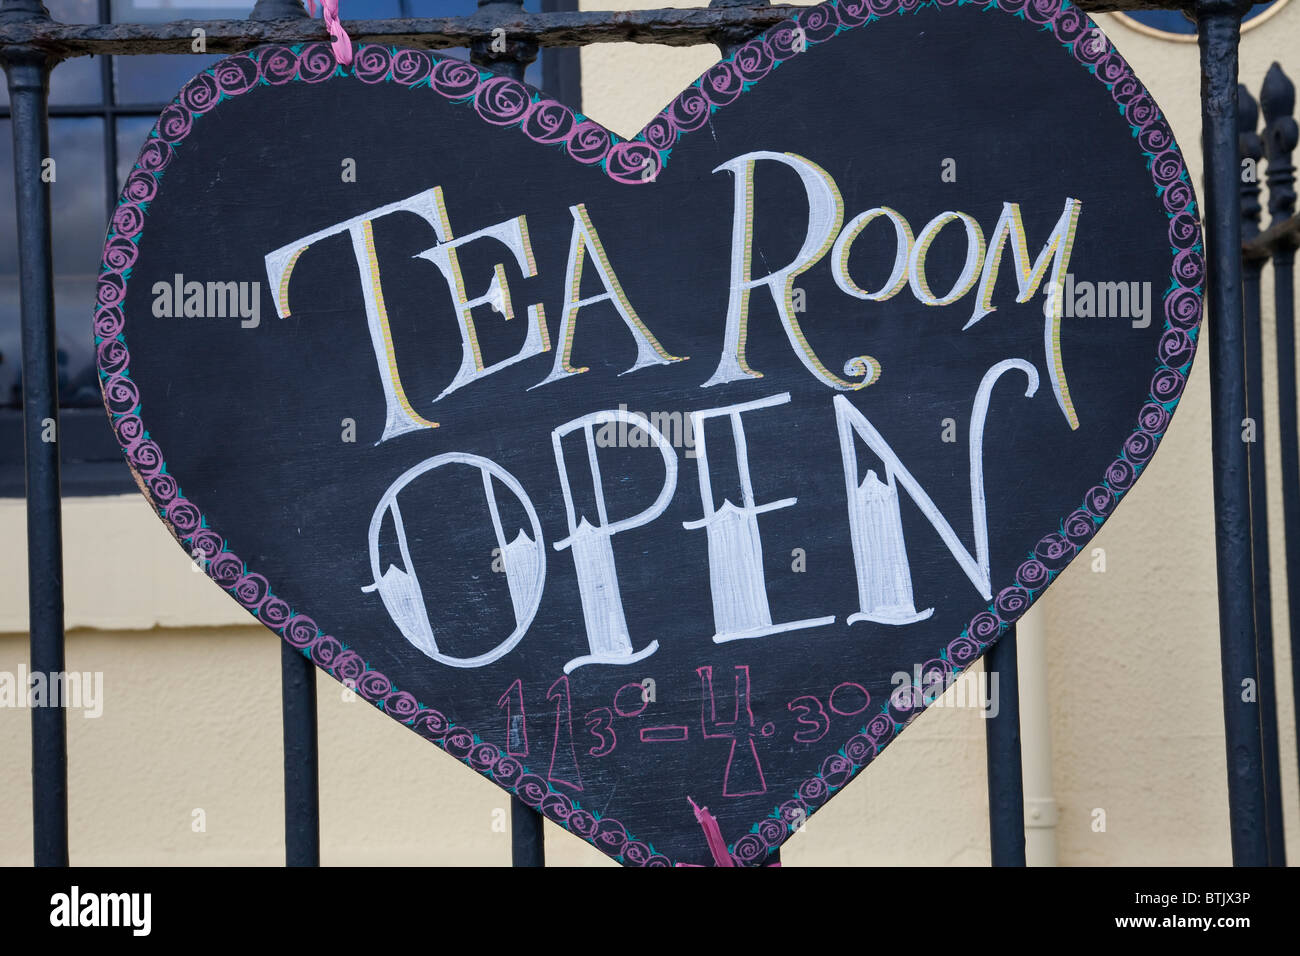 Tea Room OPEN sign Whitby North Yorkshire England - Stock Image